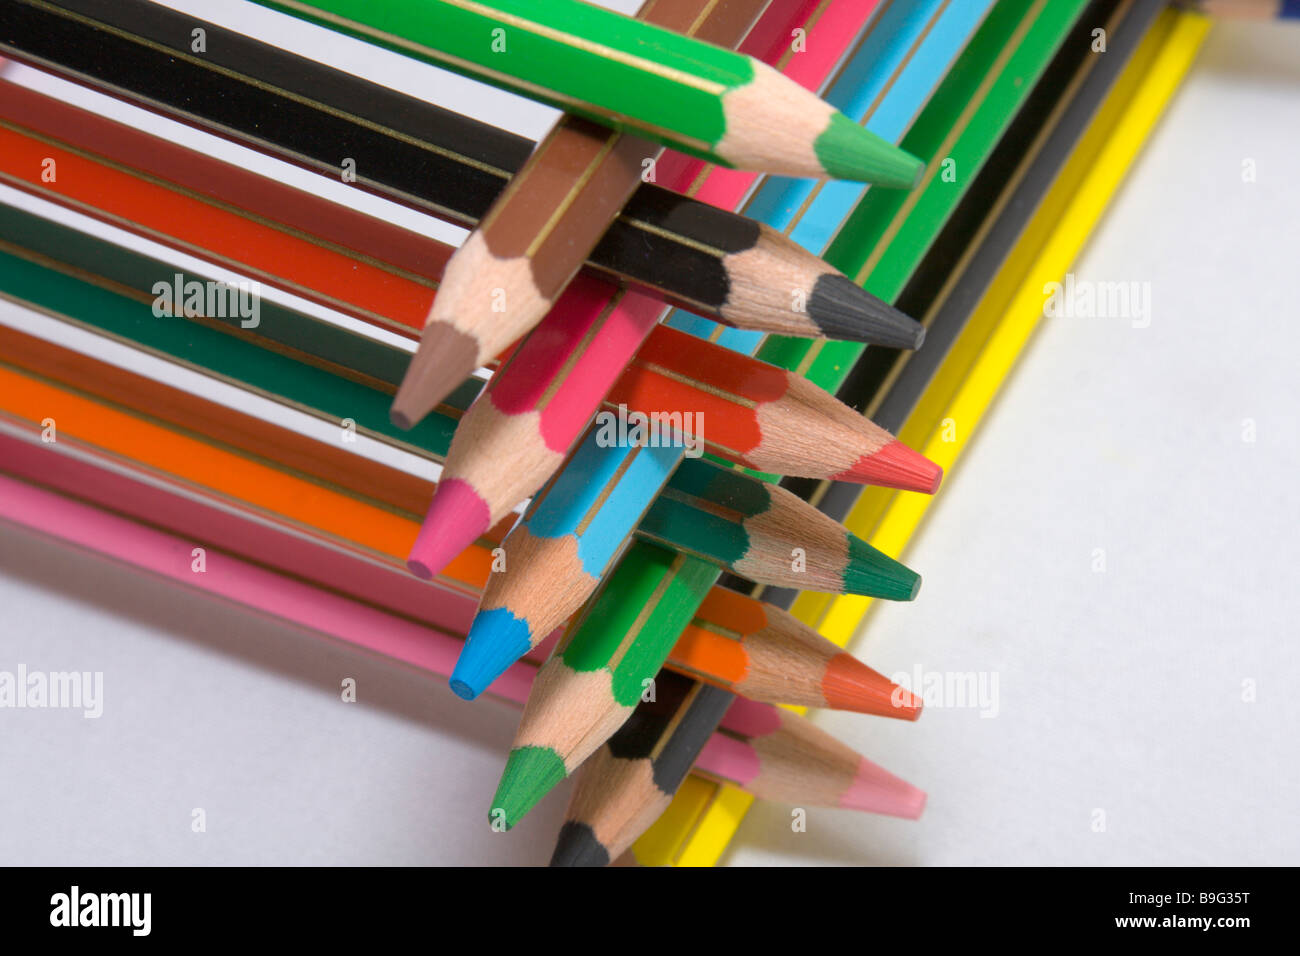 Color pencils sorted on each other. Stock Photo